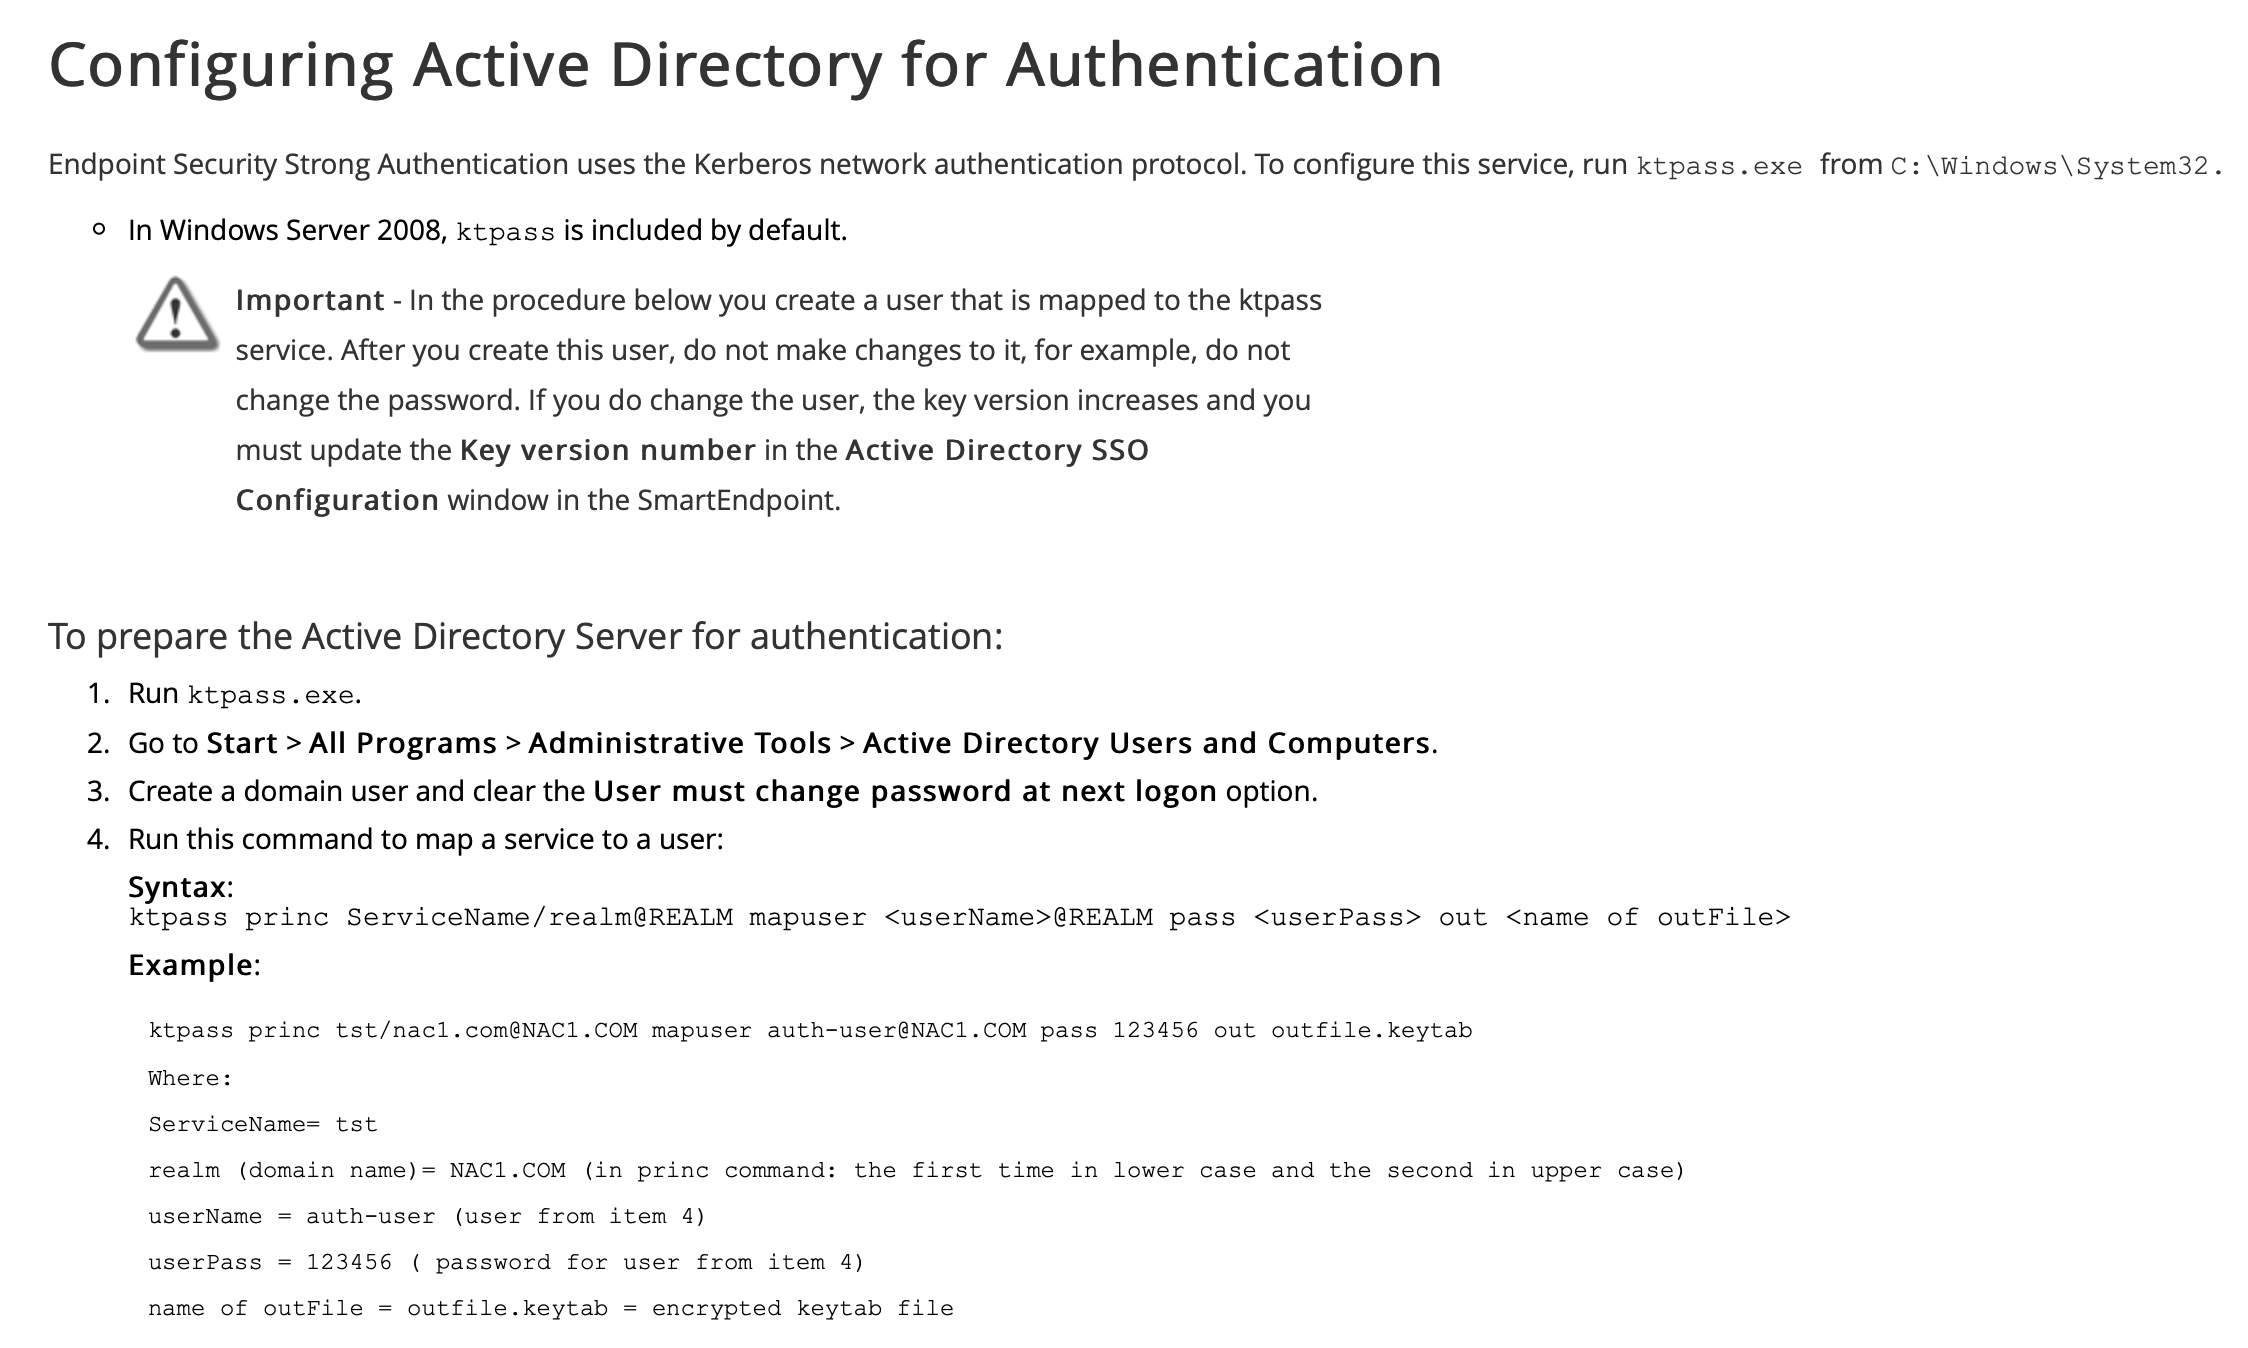 Endpoint AD Authentication - Server 2016+ - Check Point